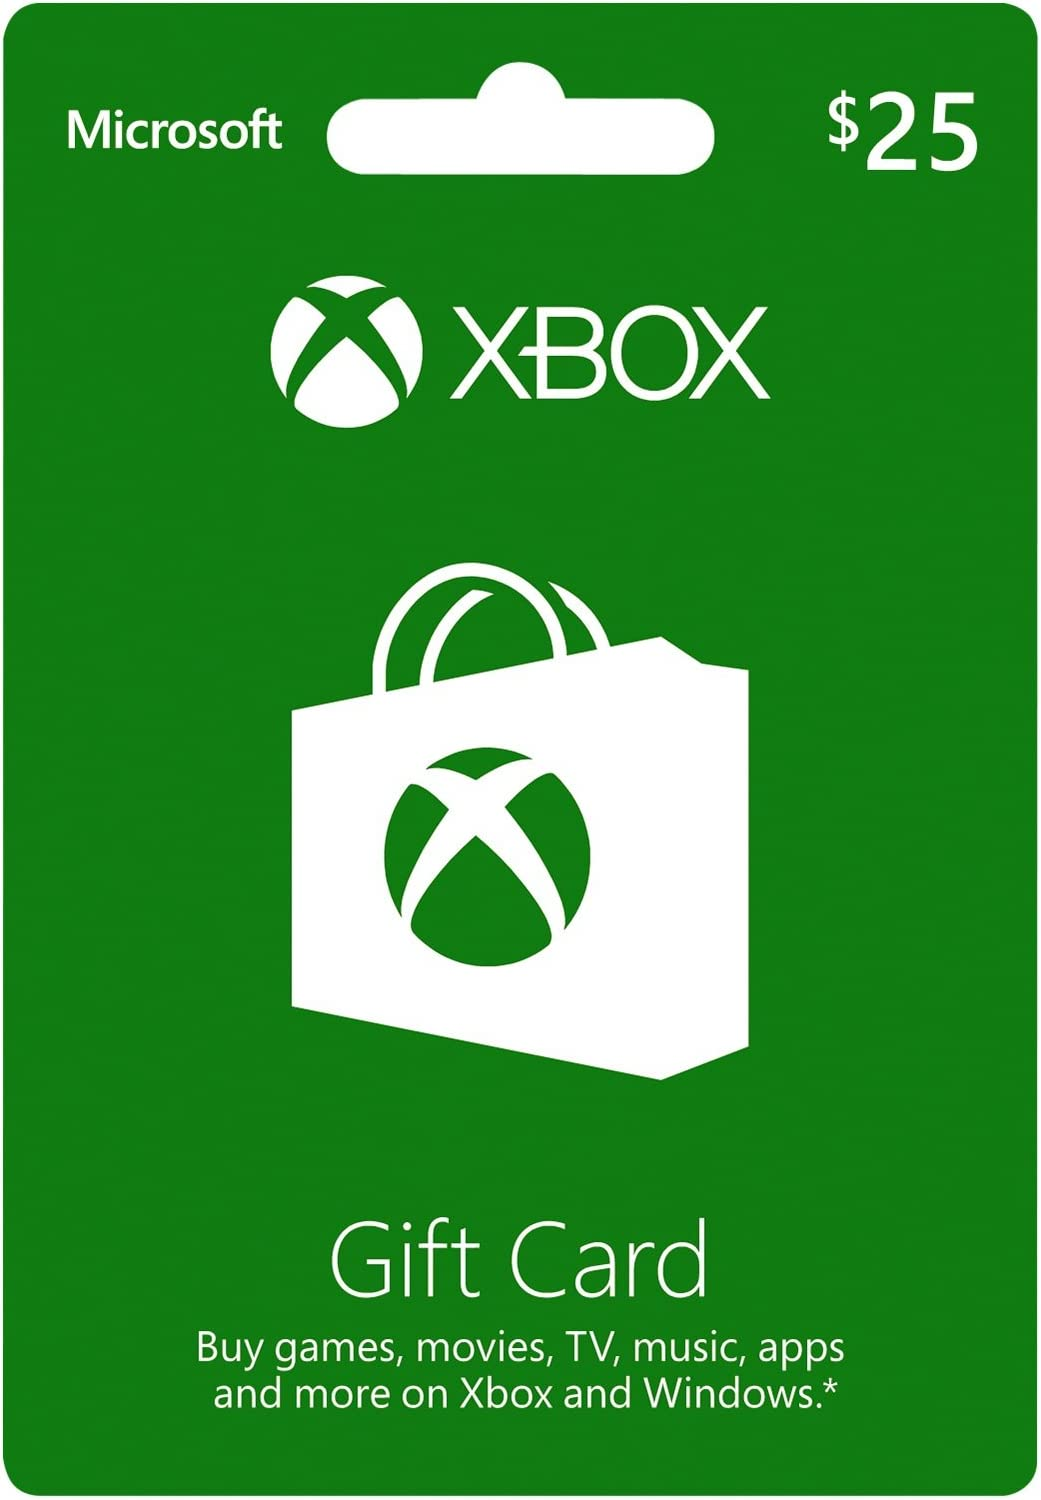 Amazon.com: Tarjeta de regalo Xbox 25: Car Electronics